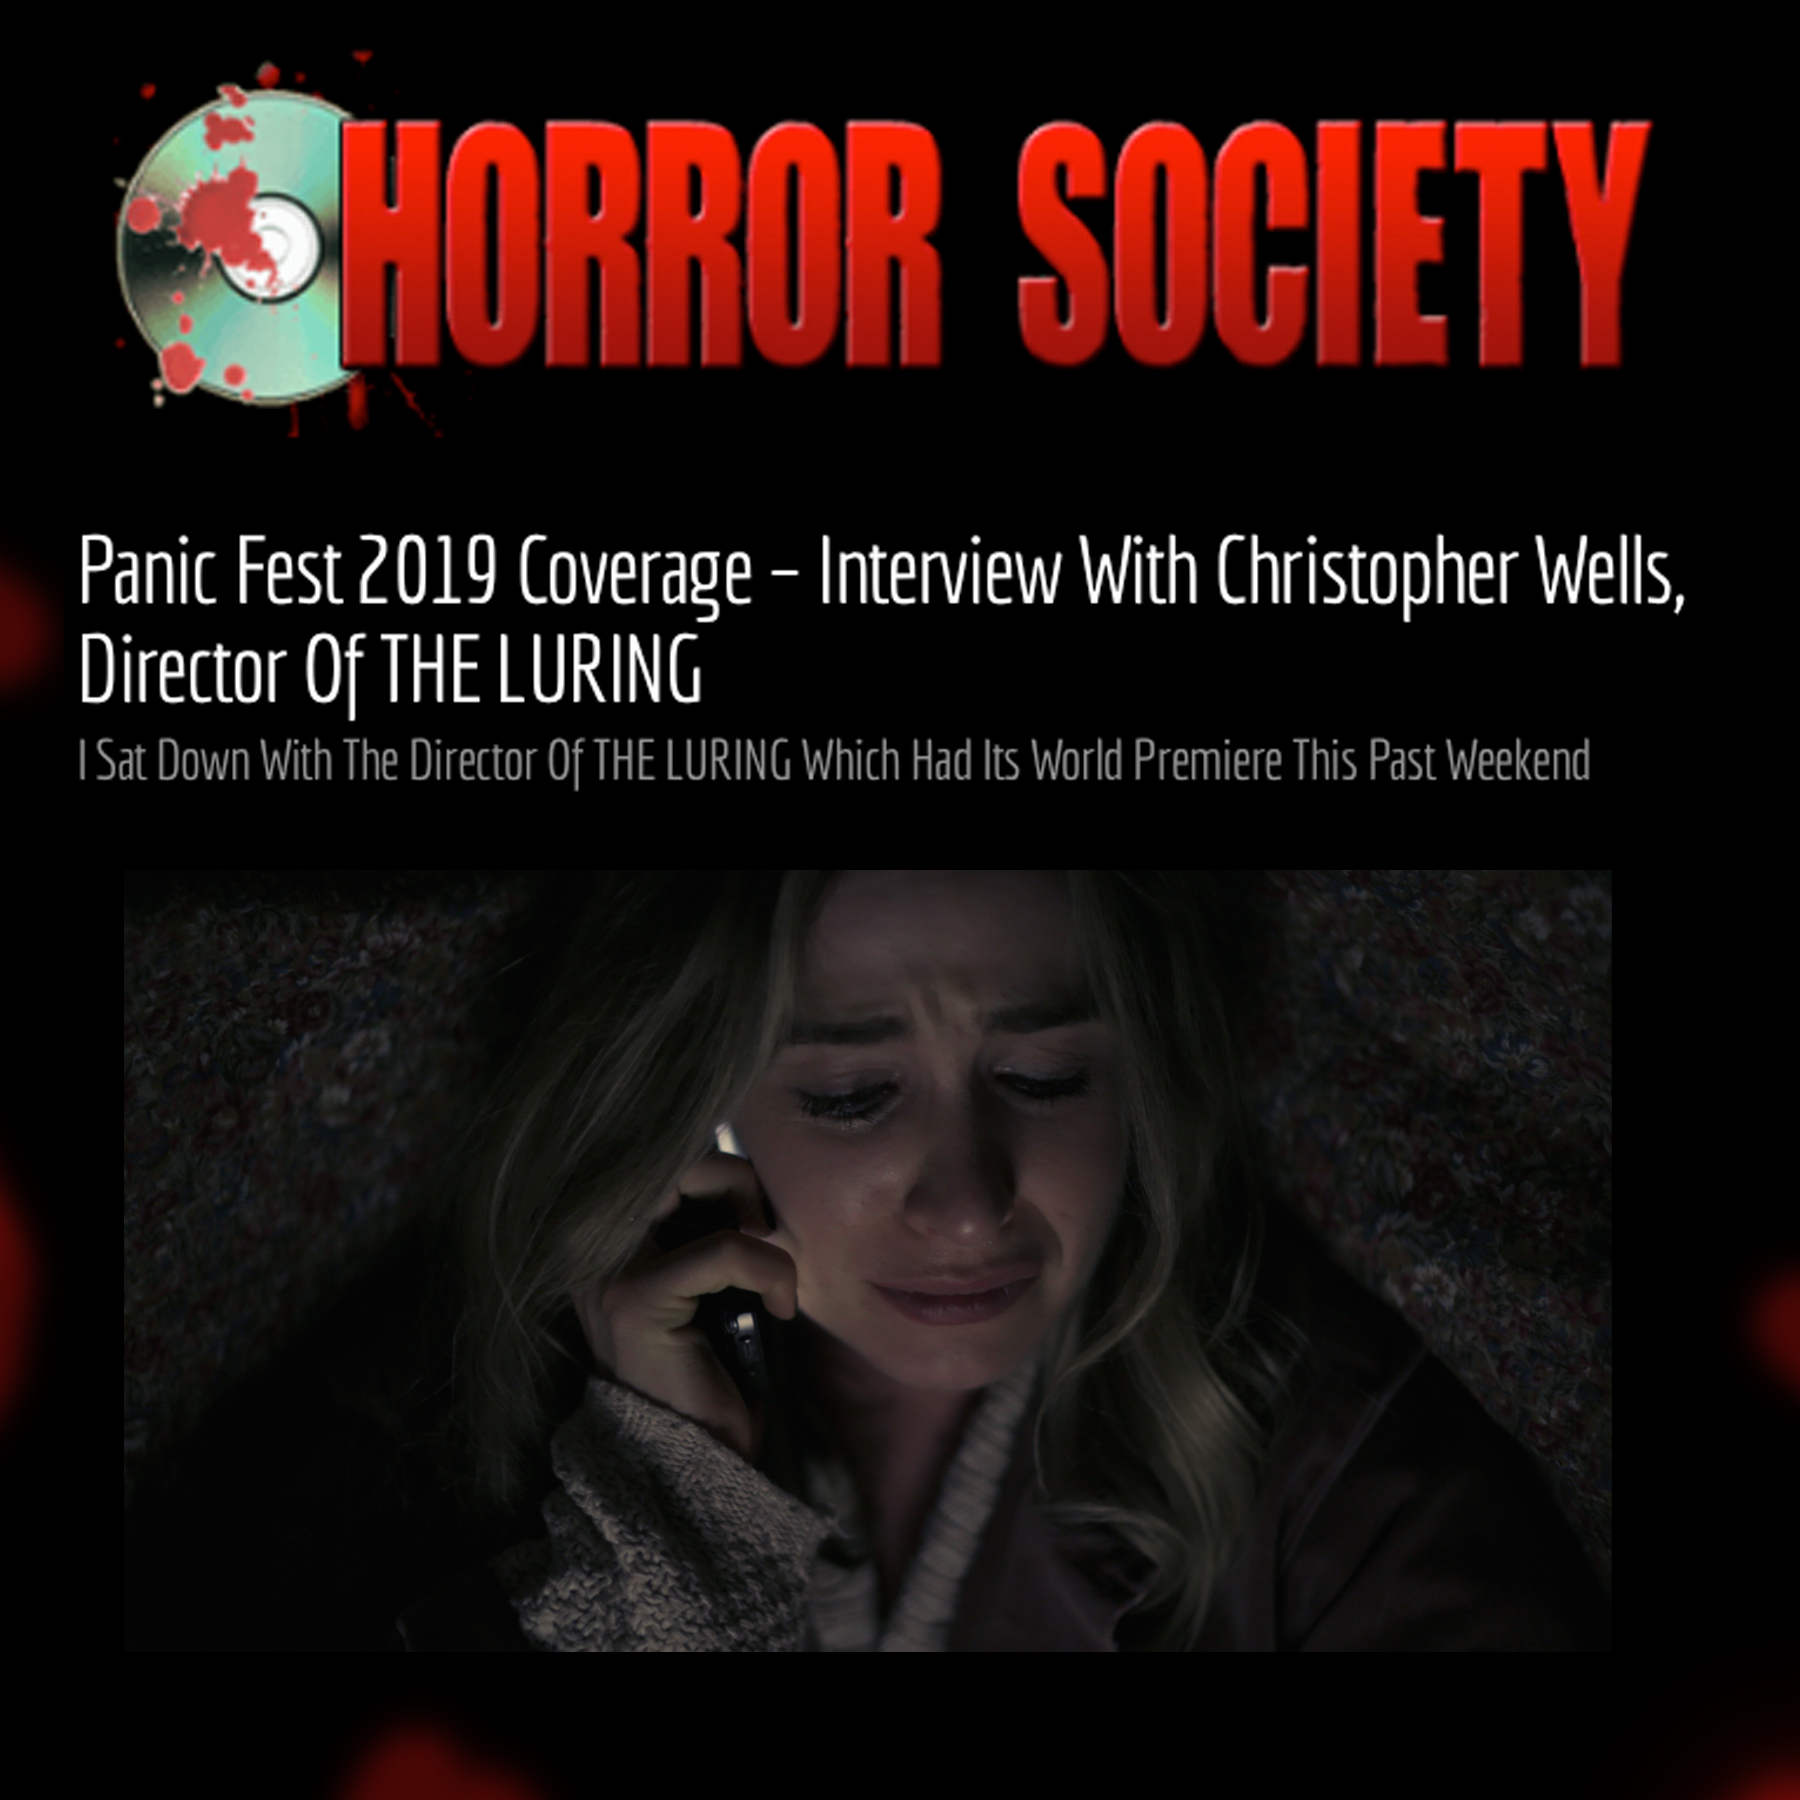 horror-society-interview-christopher-wells-director.jpg